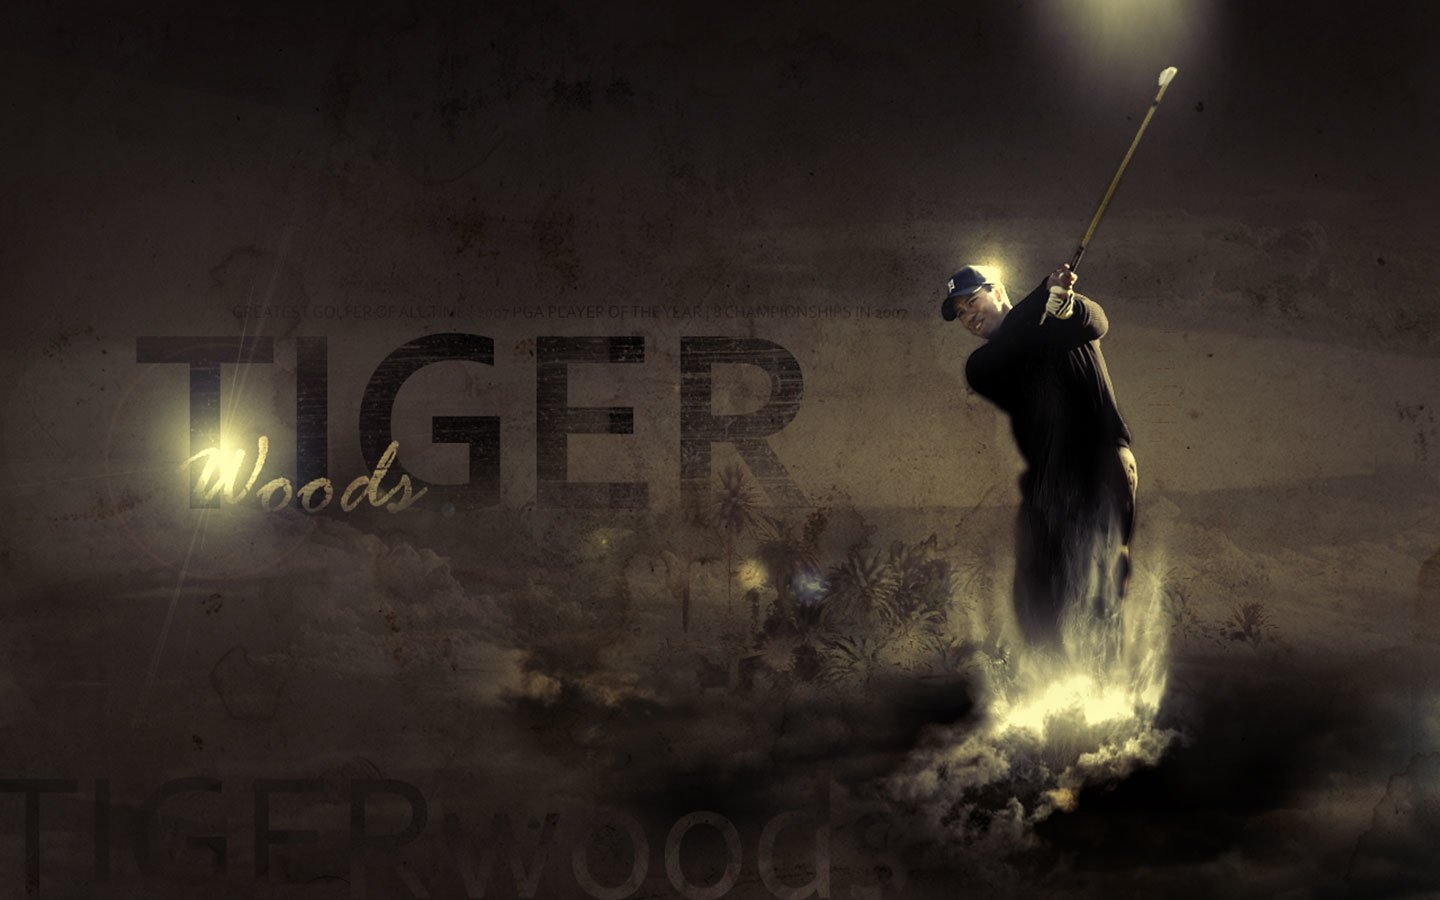 Hd Wallpaper Background Image Id 468521 1440x900 Sports Tiger Woods